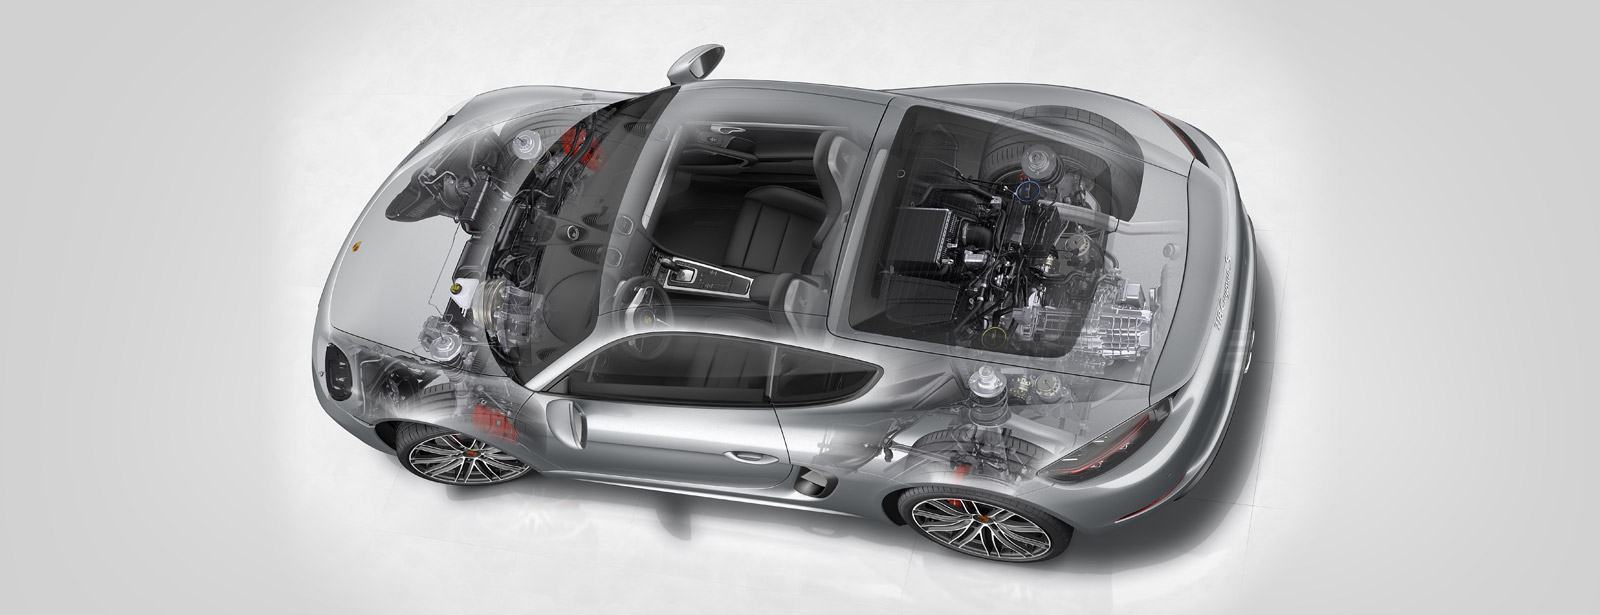 Porsche 718 Cayman - 2016 - powertrain